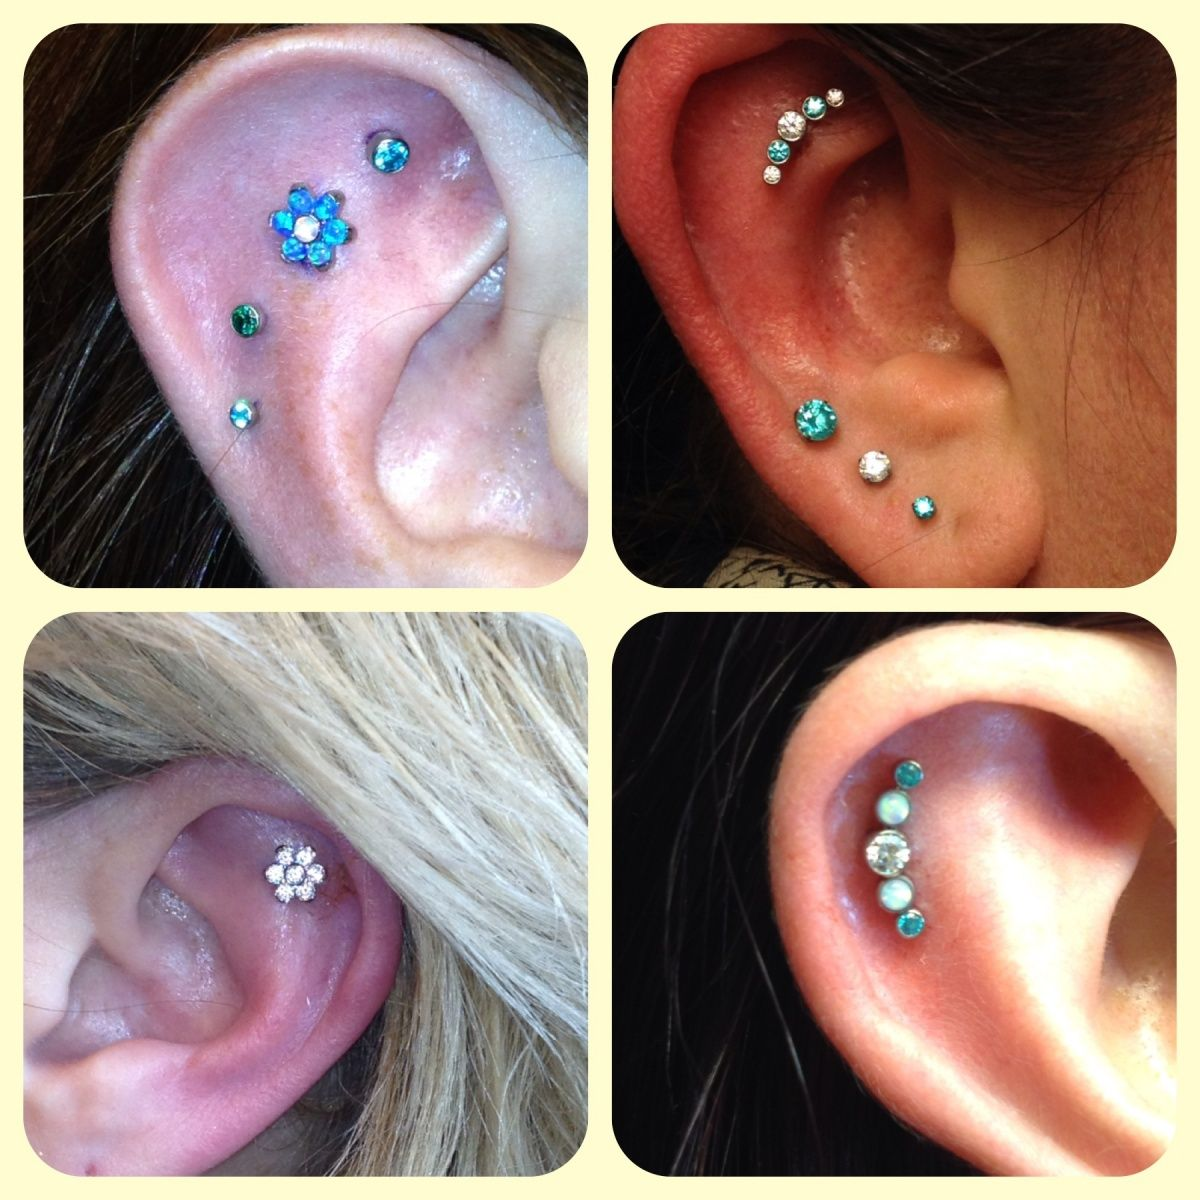 Helix Cartilage Piercings With Anatometal Cluster Earrings  And Neometal Jewelry